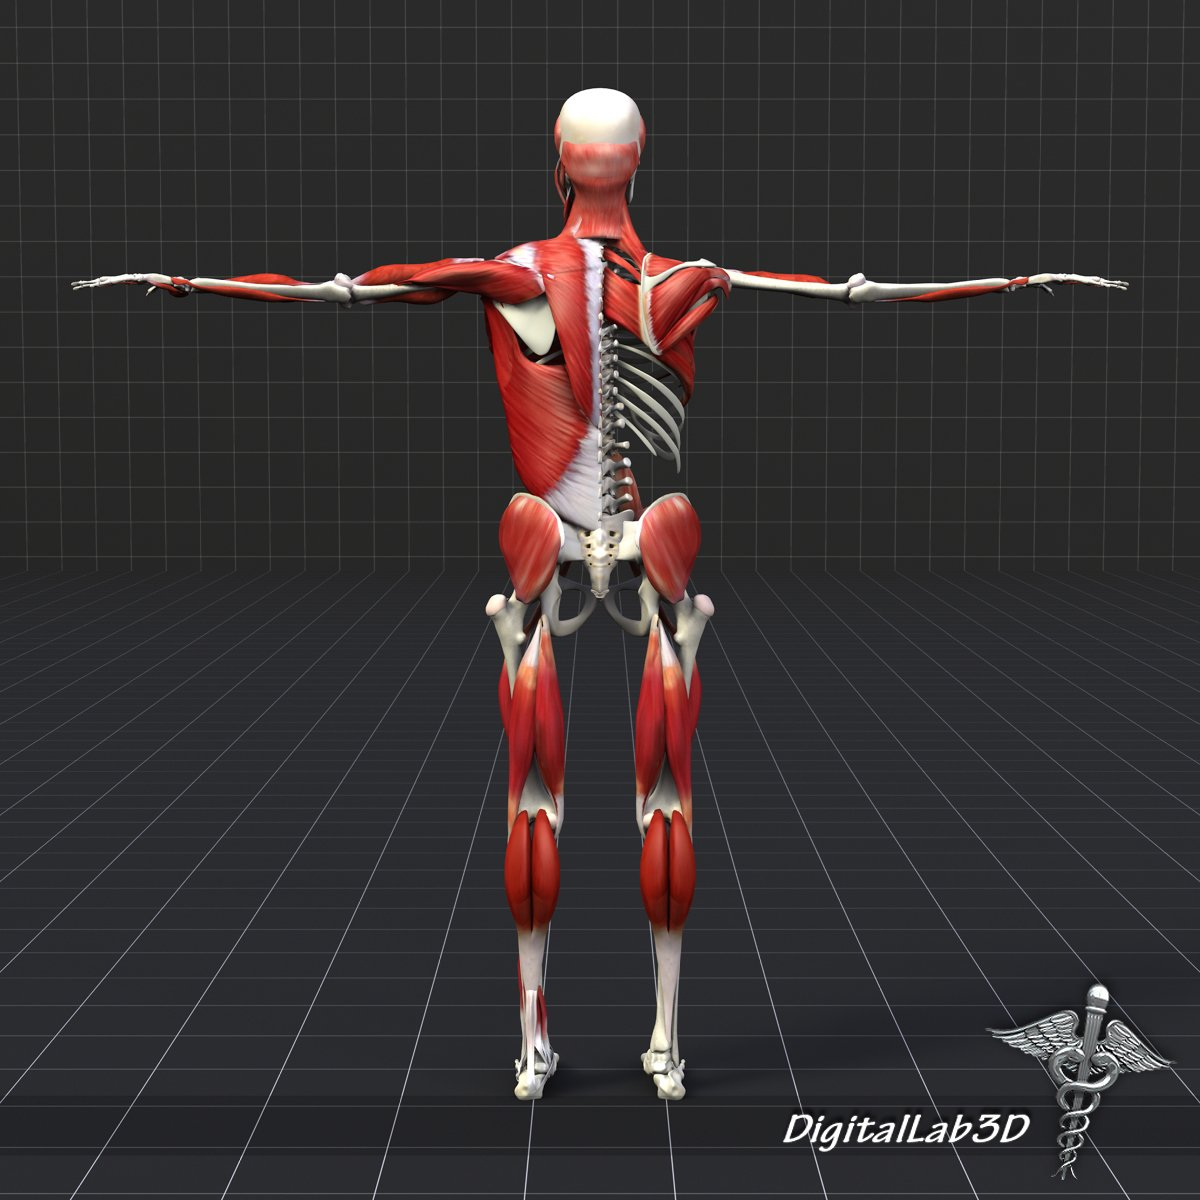 Human Muscle And Bone Structure 3d Model In Anatomy 3dexport